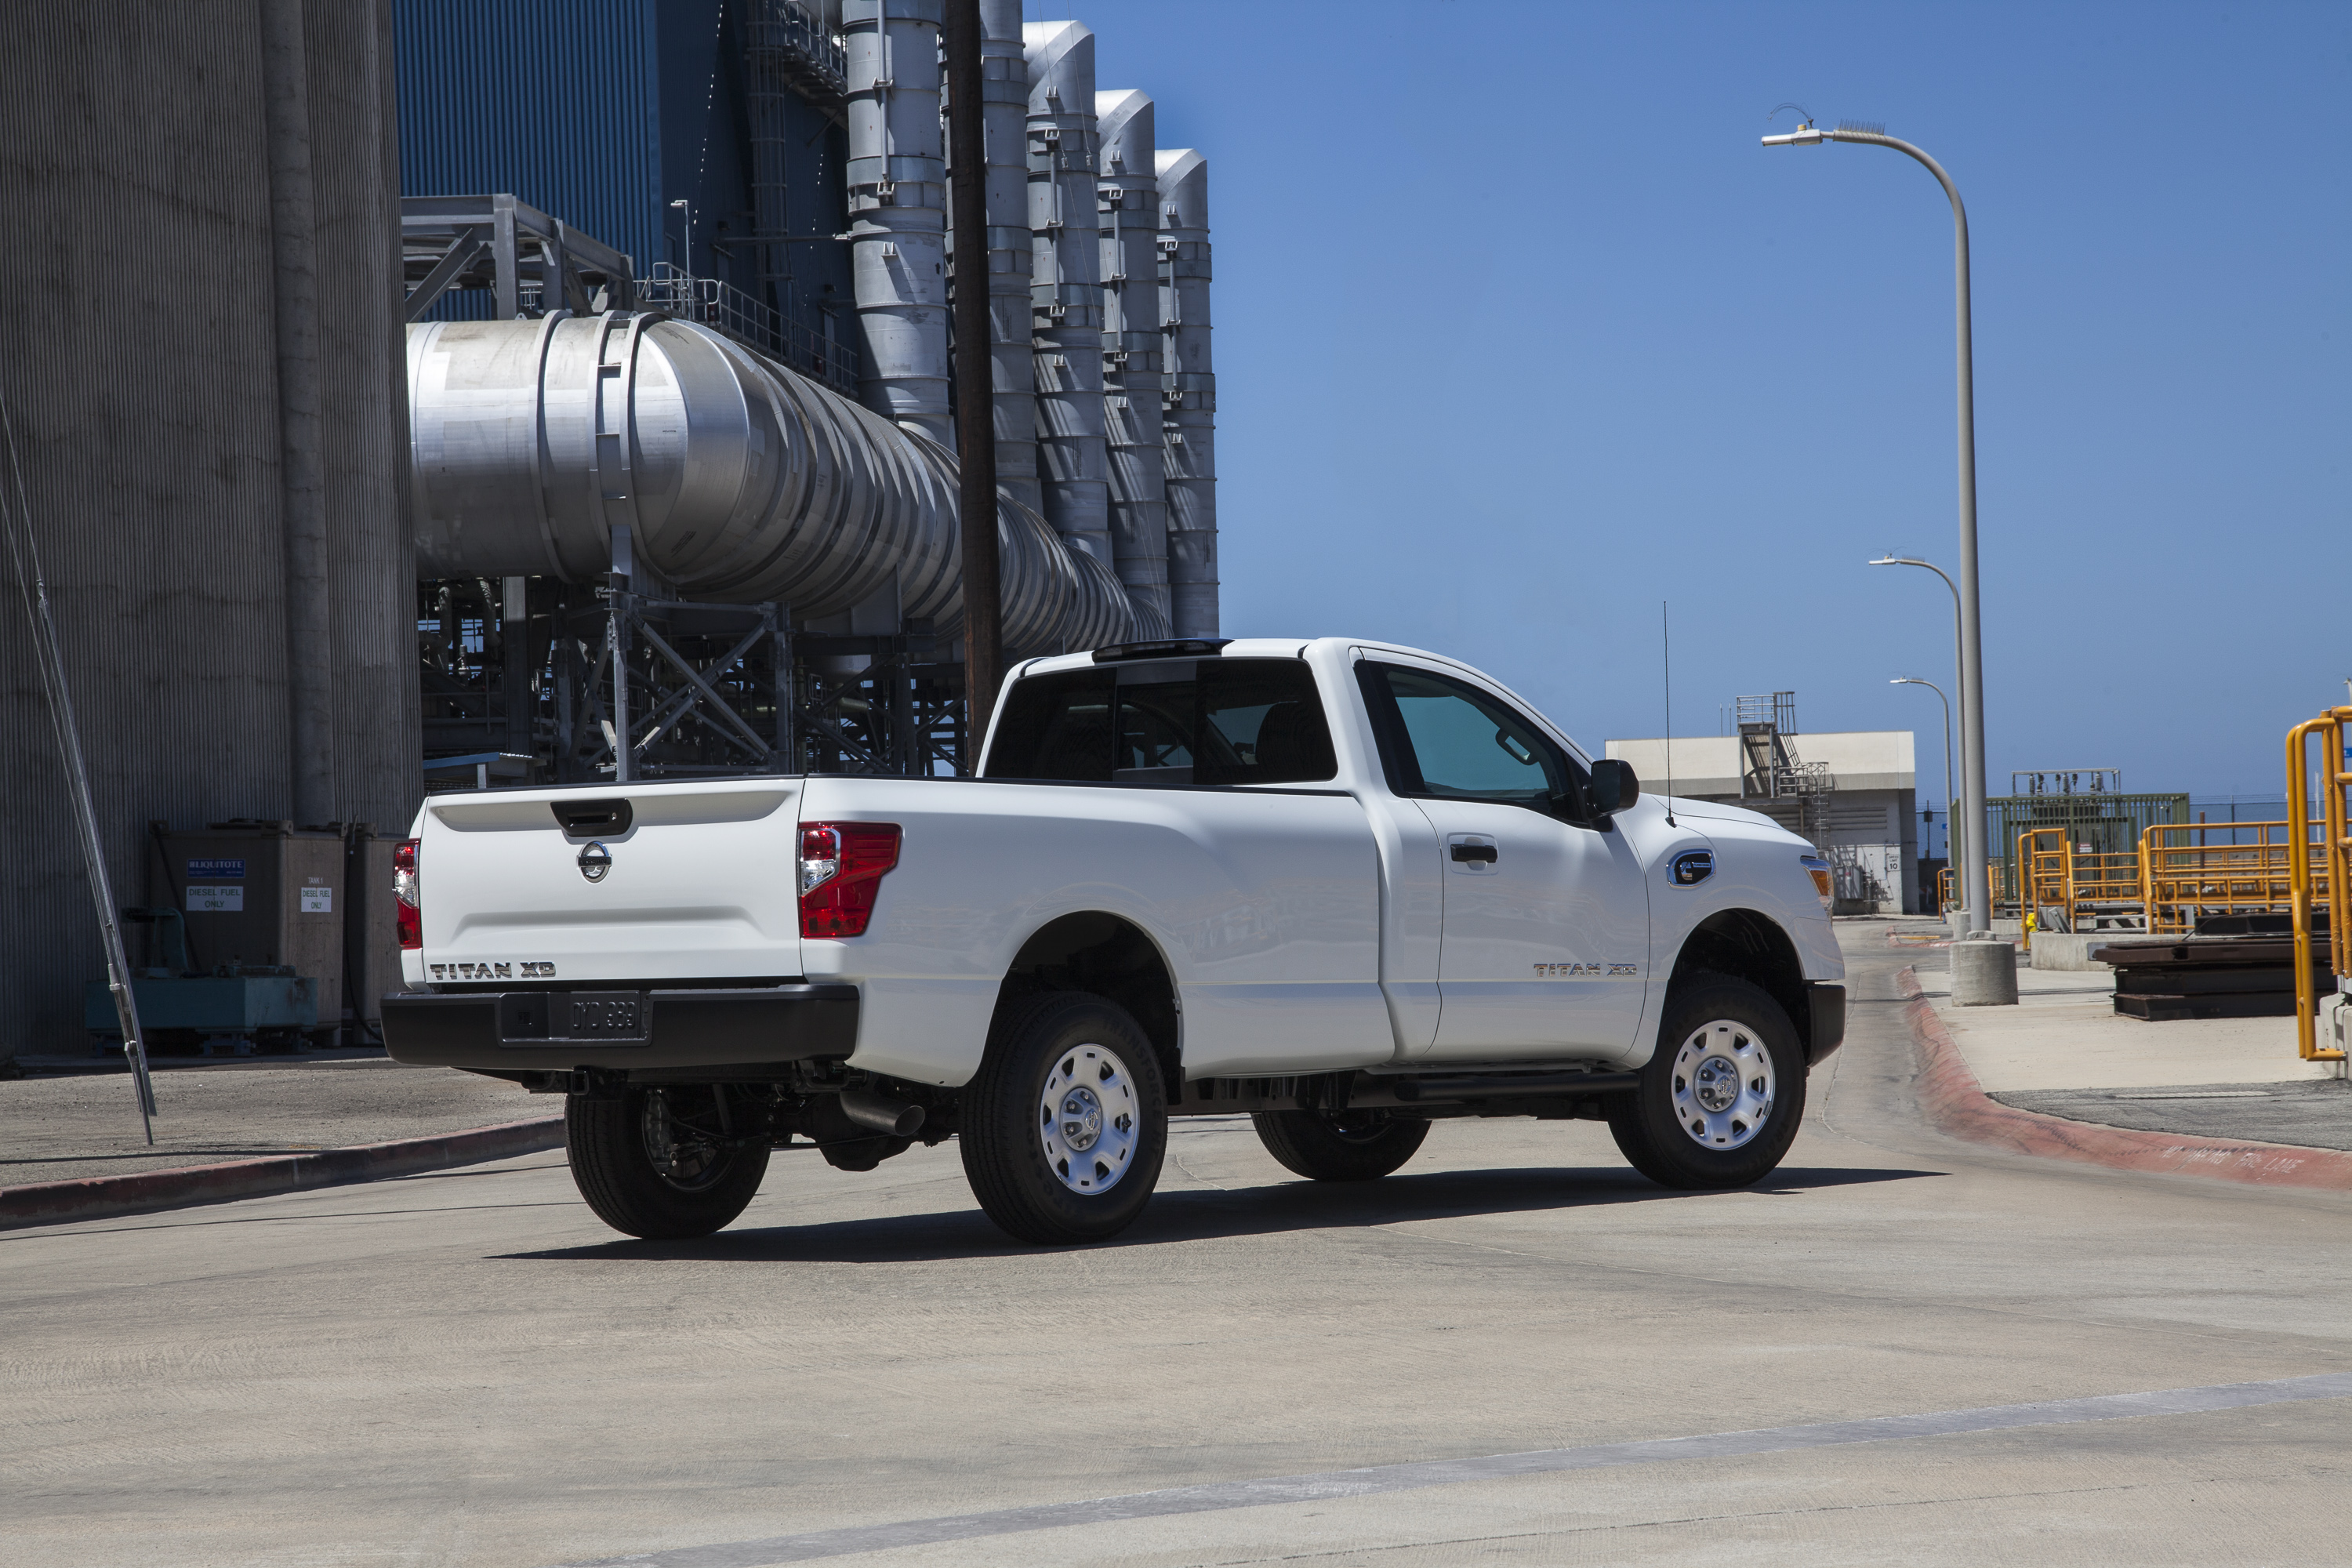 The 2017 TITAN XD Single Cab, like the TITAN XD Crew Cab, will be offered in a choice of two engines – the Cummins® 5.0L V8 Turbo Diesel, which is rated at 310 horsepower and 555 lb-ft of torque; and the 5.6-liter Endurance V8, rated at 390 horsepower and 394 lb-ft of torque.